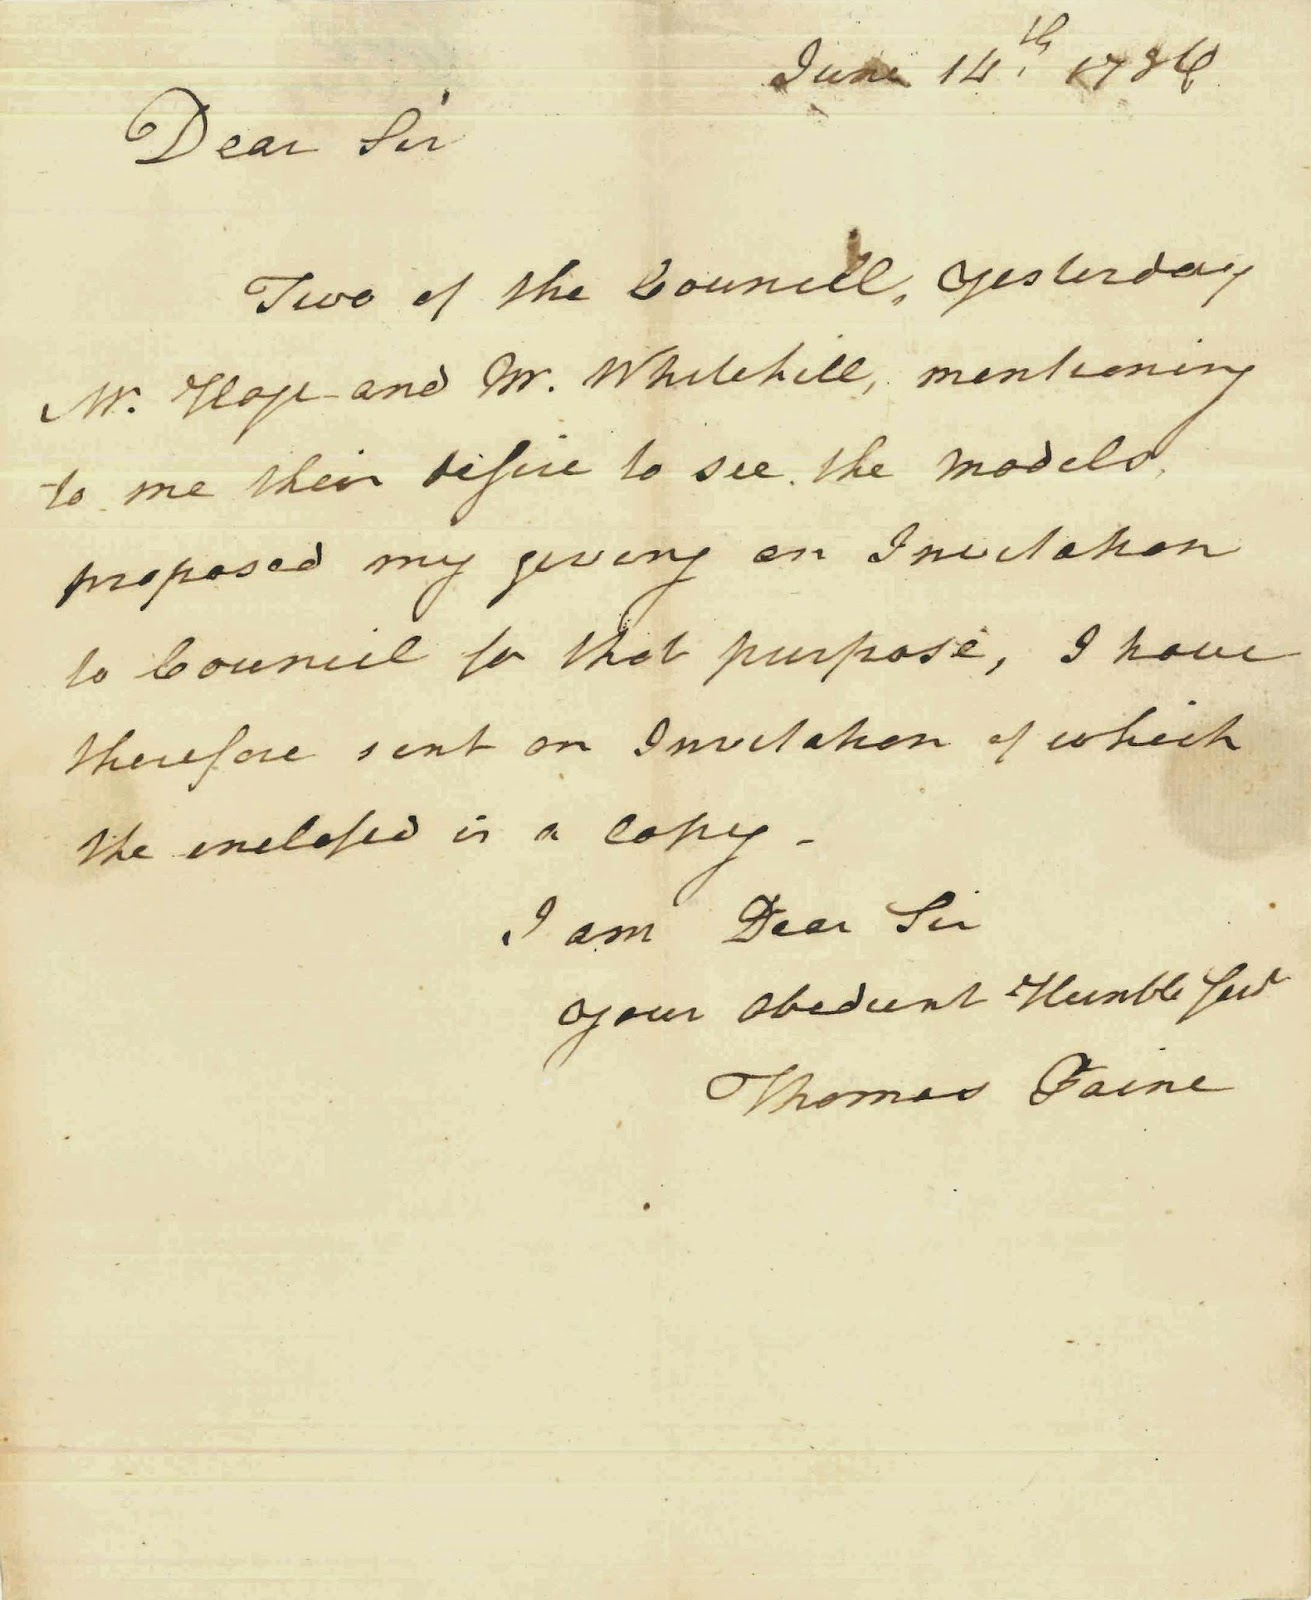 A handwritten letter from Thomas Paine.